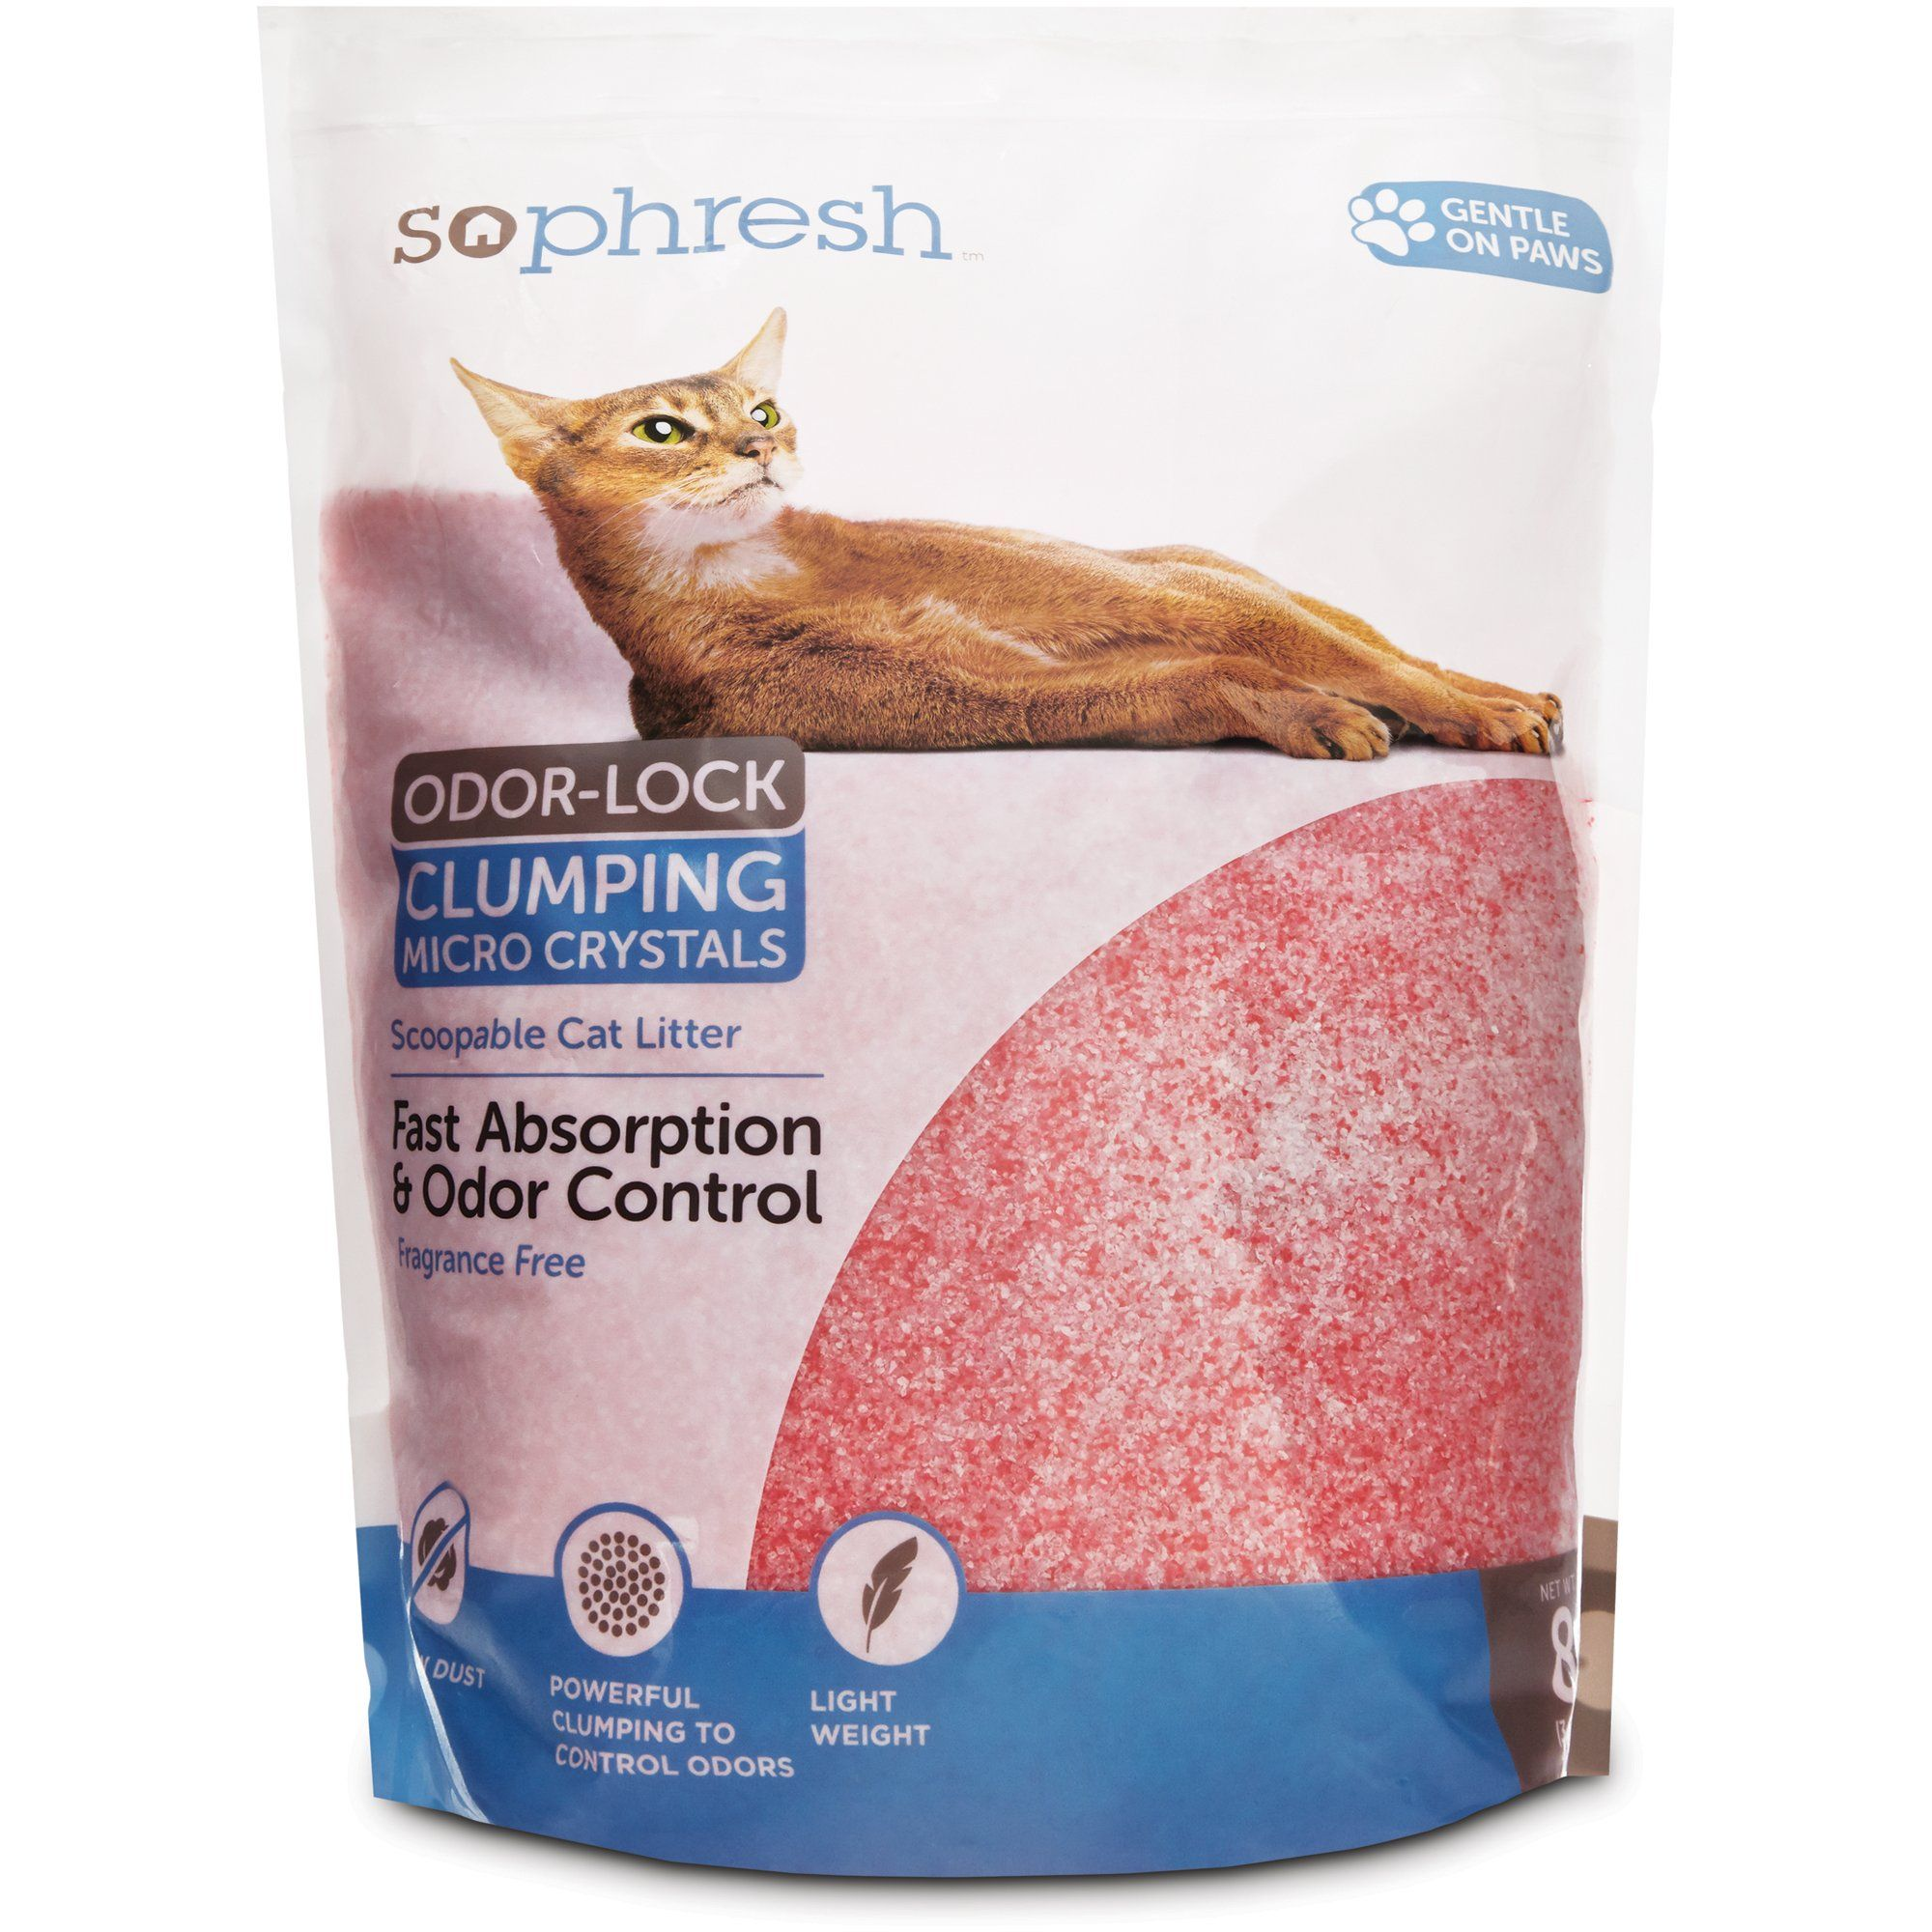 So Phresh Scoopable Odor Lock Clumping Micro Crystal Cat Litter In Pink Silica 8 Lbs Cat Litter Cat Litter Odor Litter